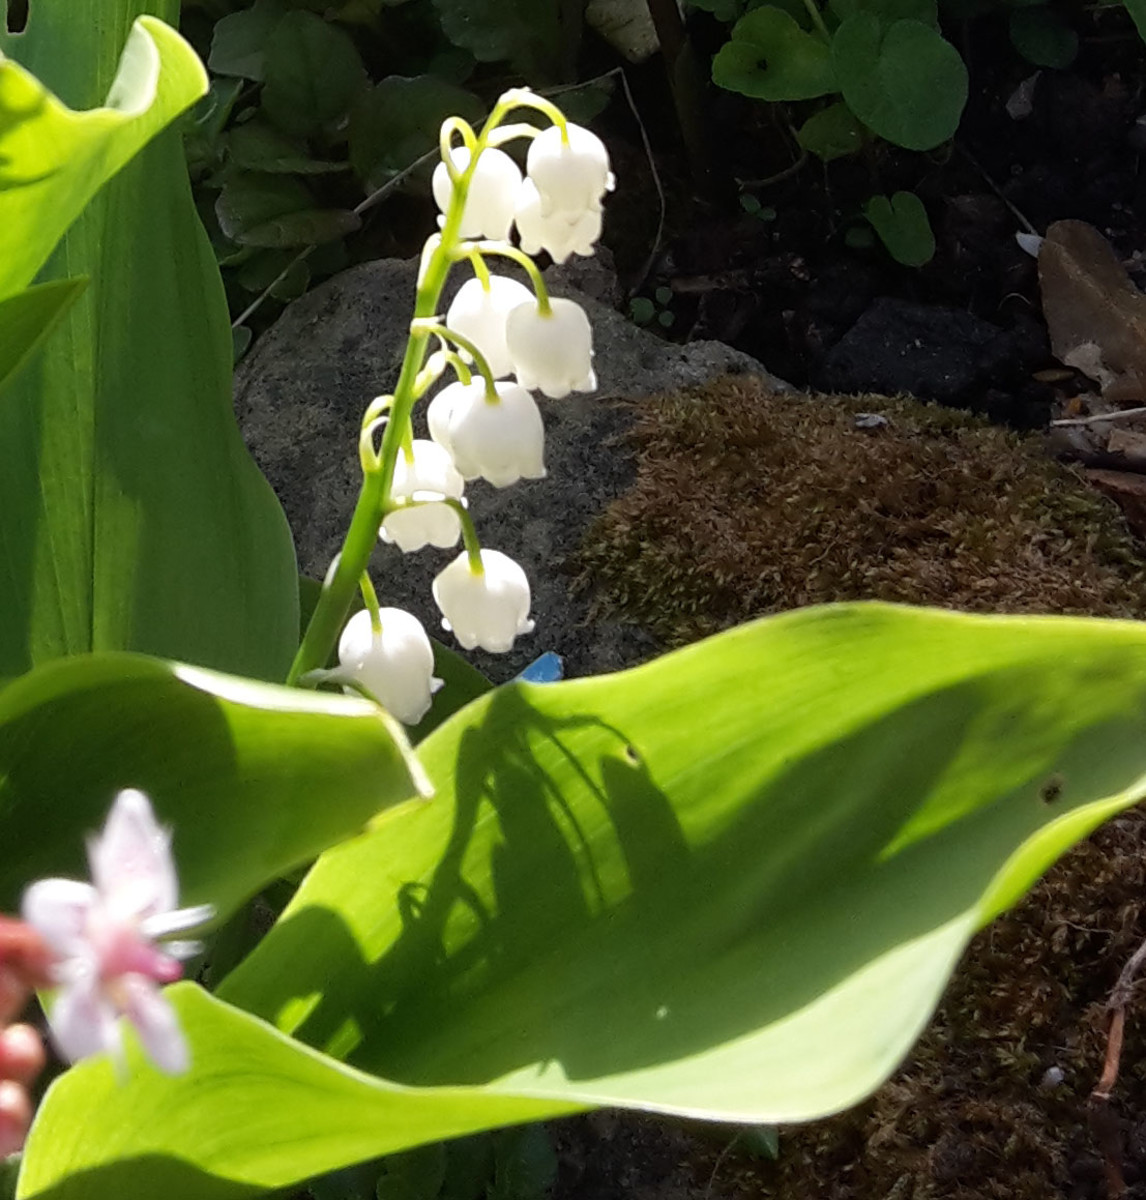 Poisonous Plants: Lily of the Valley, Poison Ivy, and Foxglove (Digitalis)